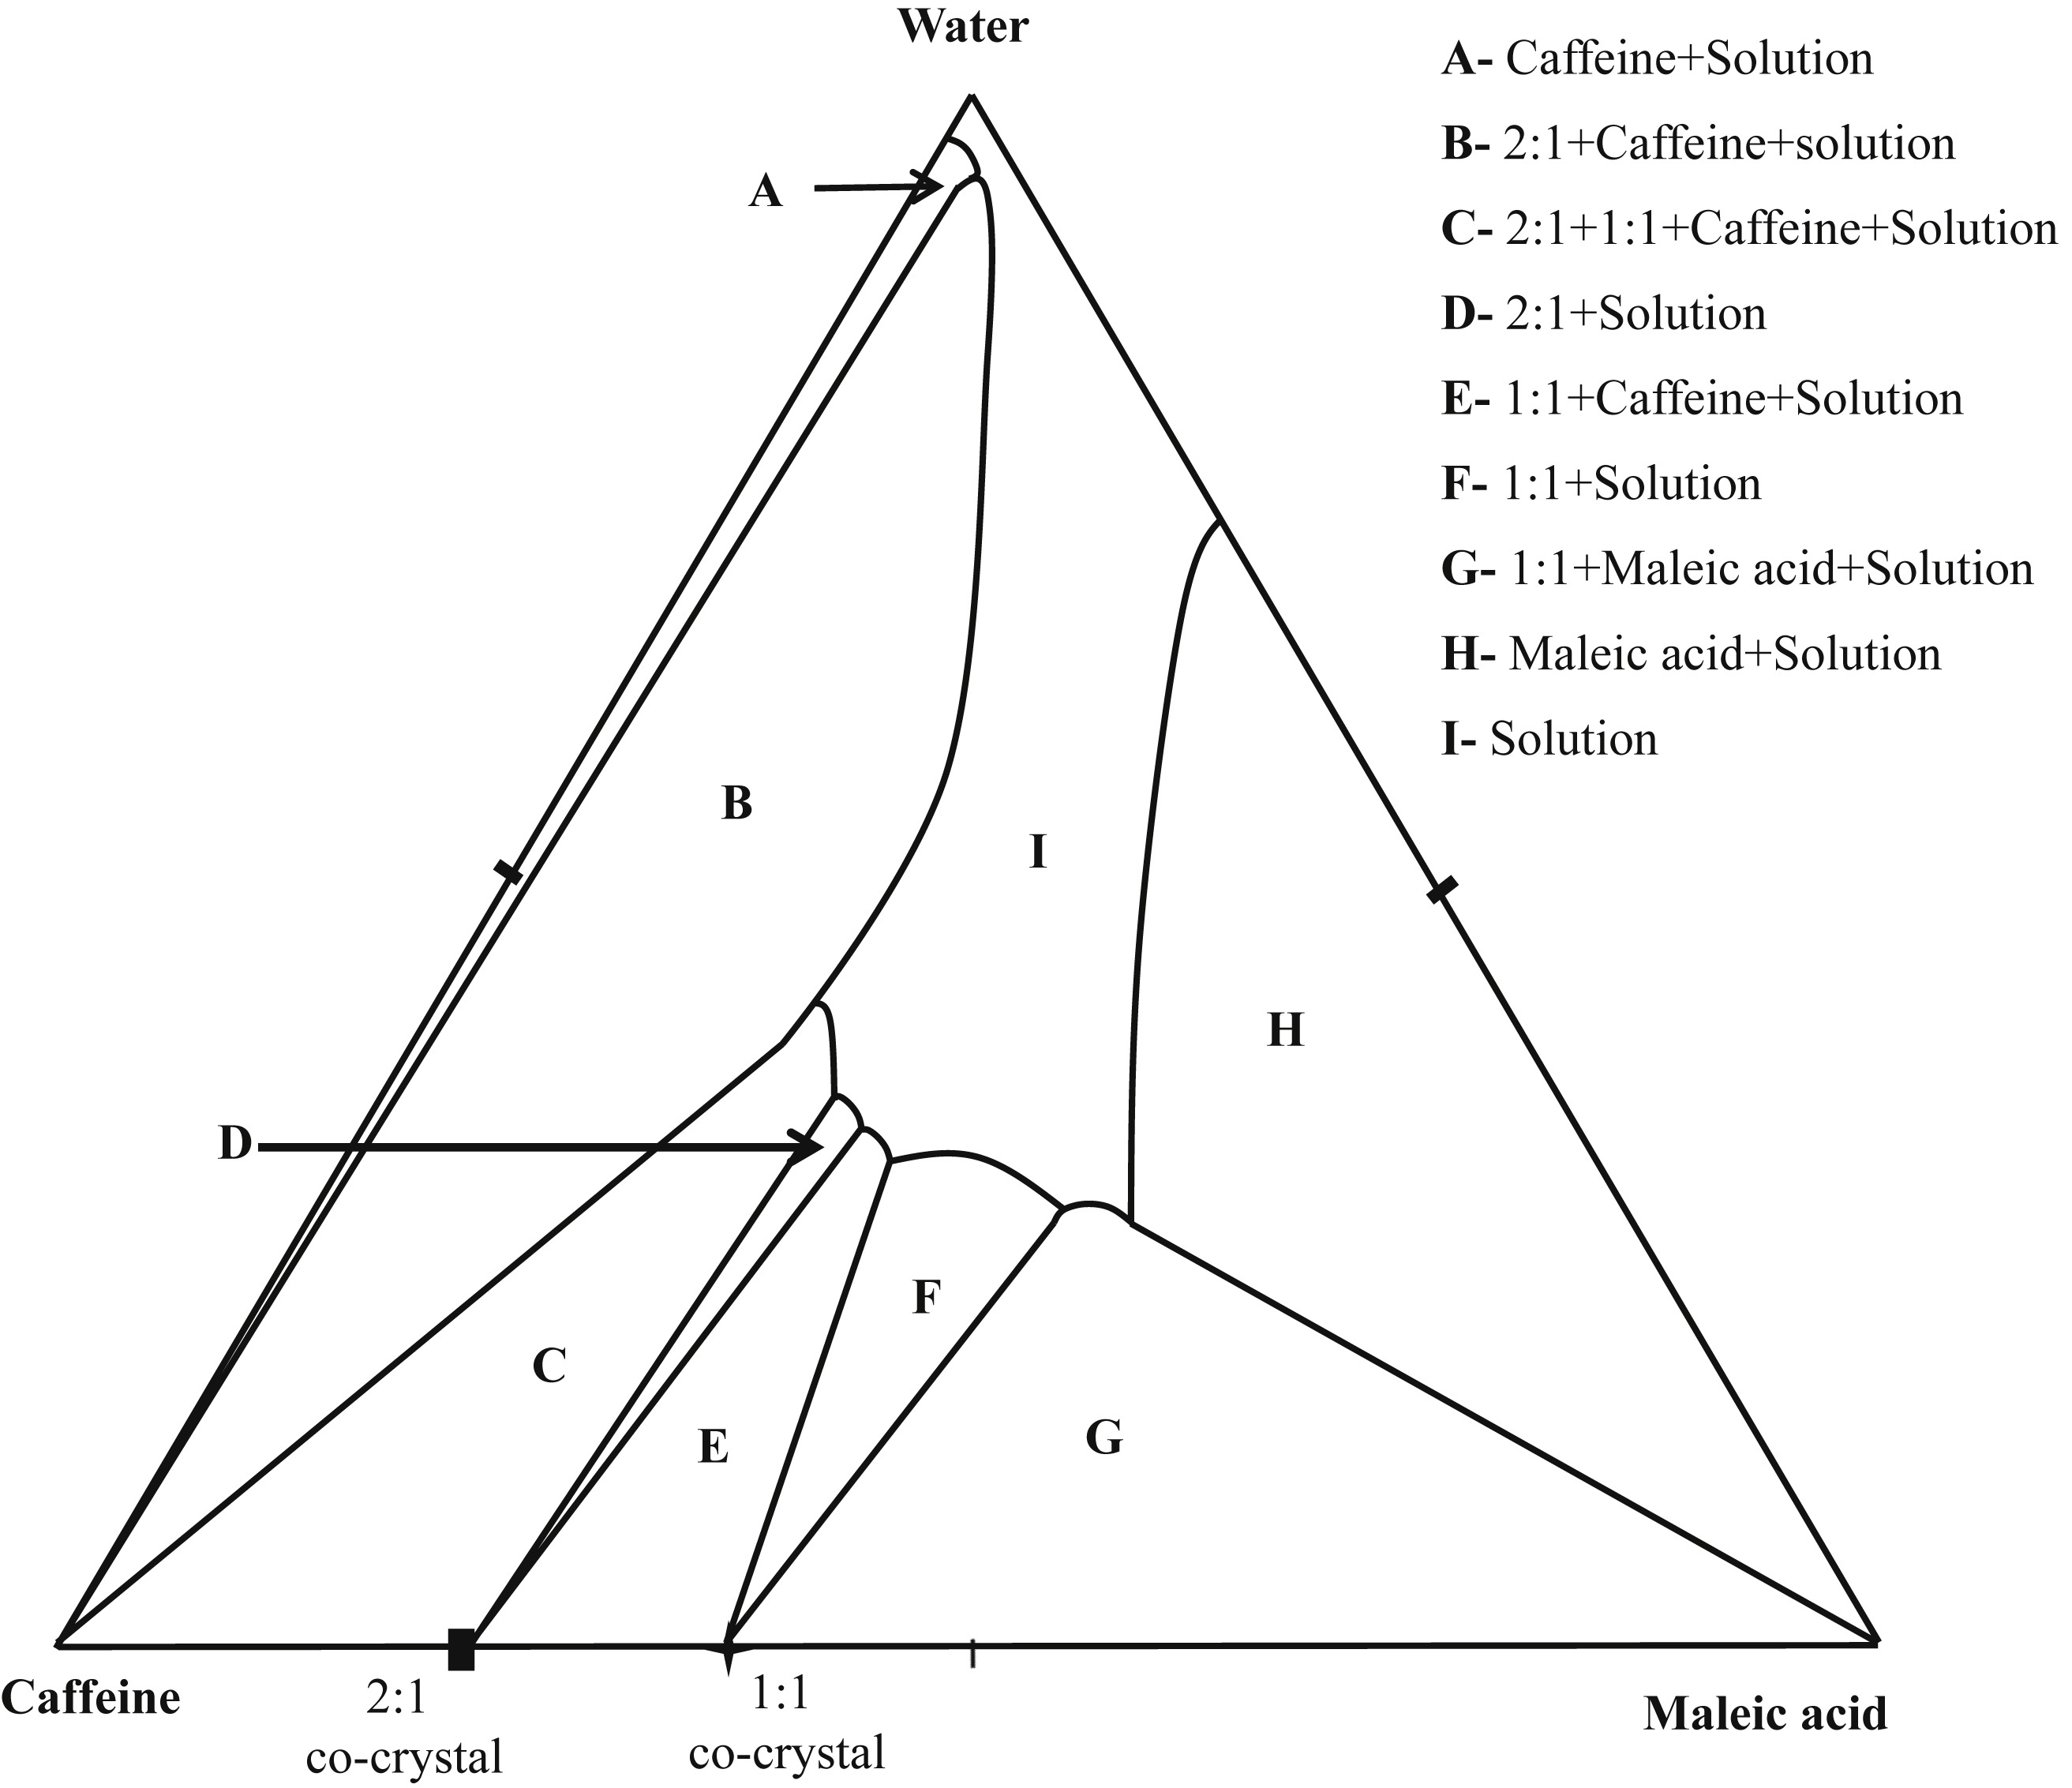 Synthesis of Caffeine/Maleic Acid Co-crystal by Ultrasound